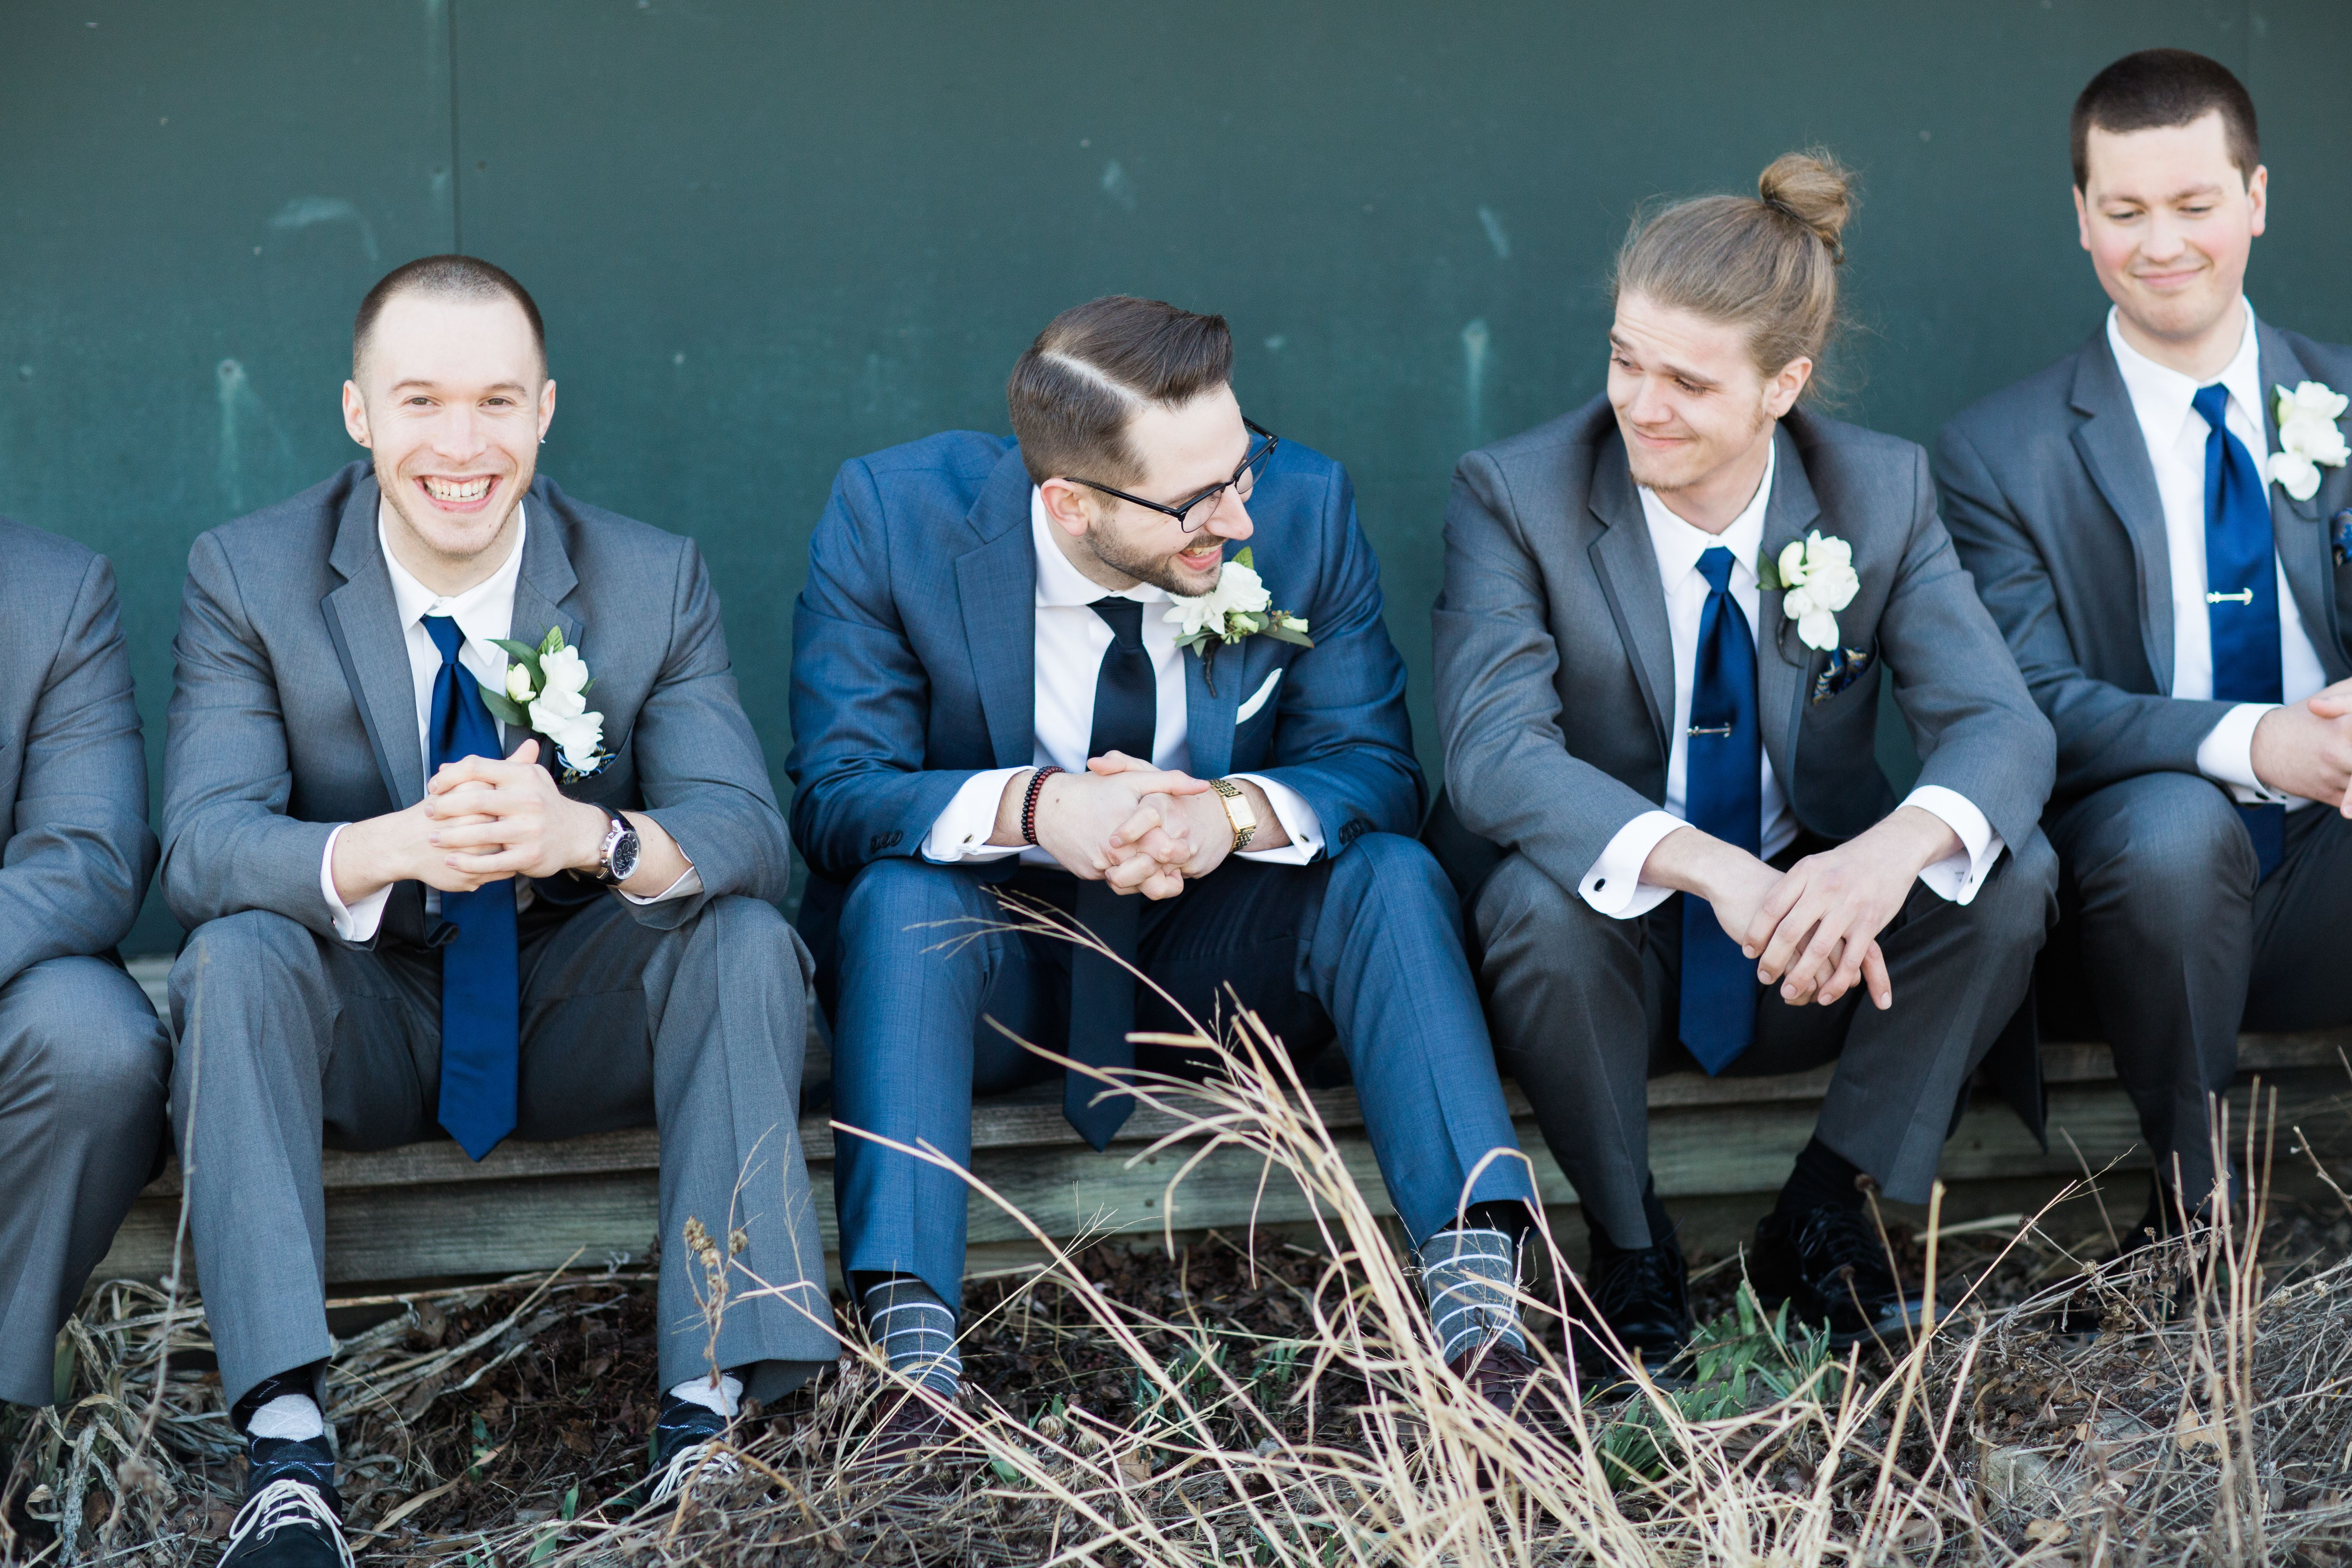 Groomsmen in Navy Blue Vera Wang Suits | Suits for Guys | Pinterest ...